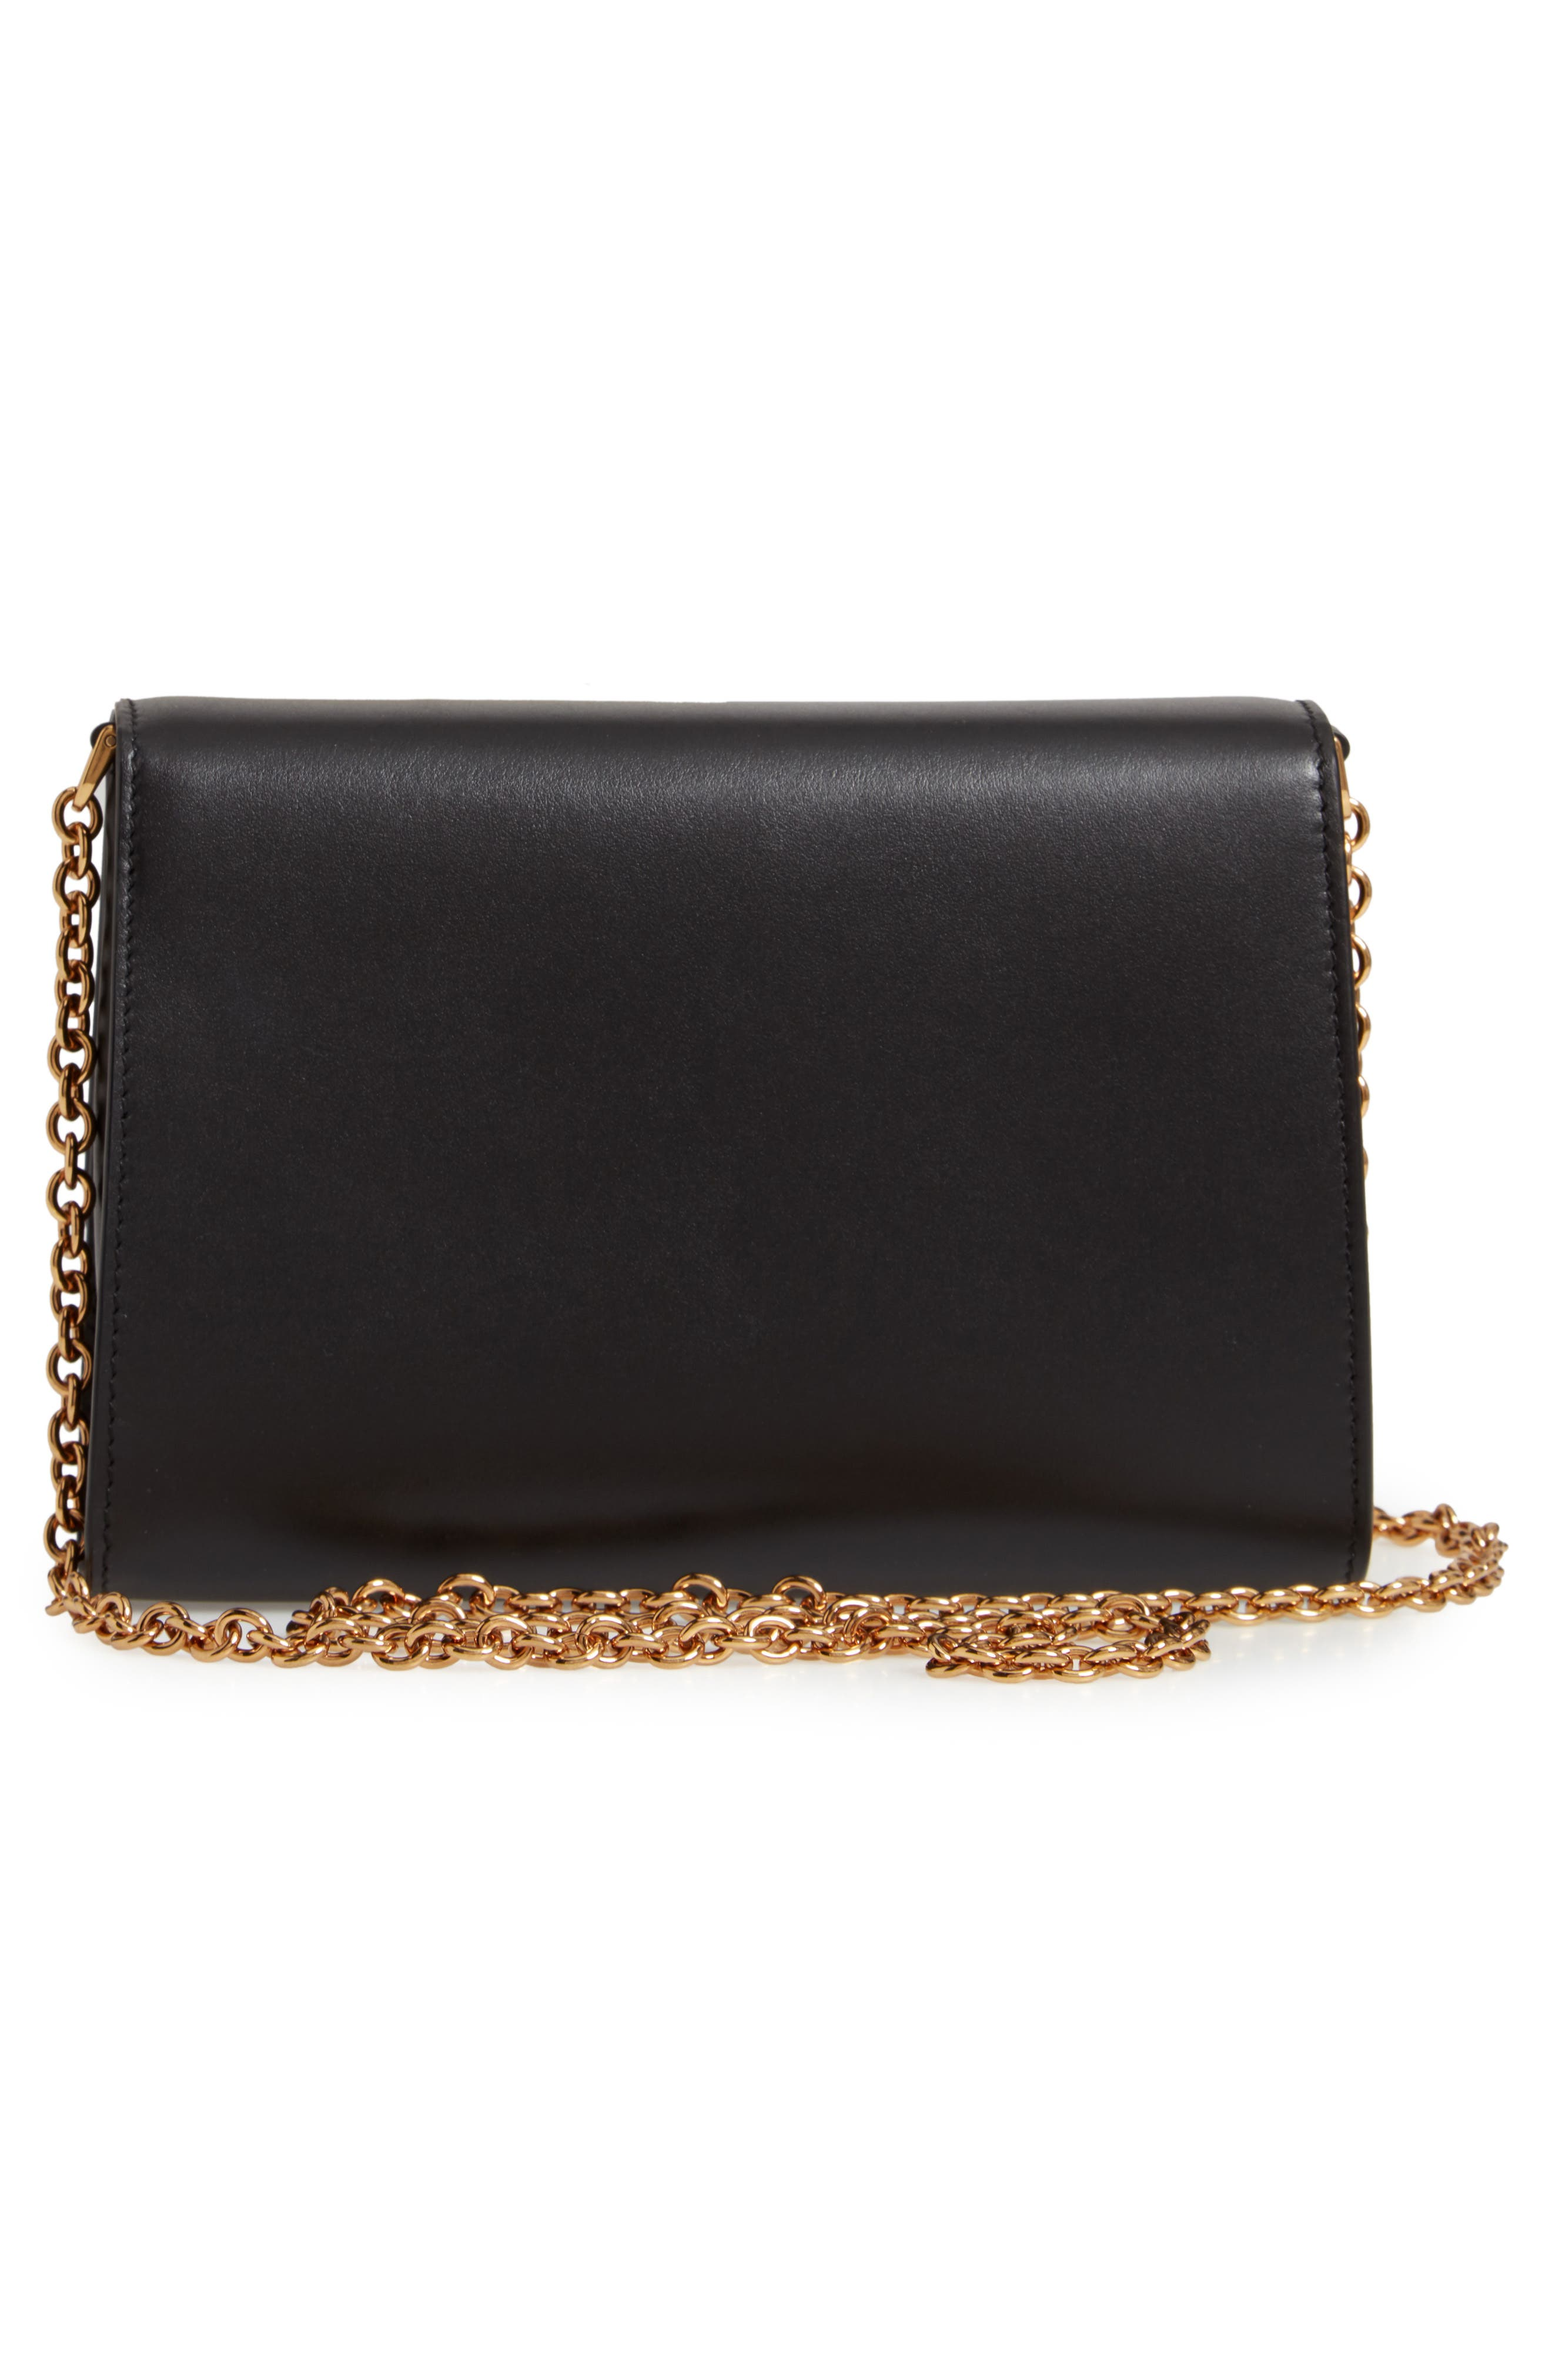 DOLCE&GABBANA, Leather Clutch, Alternate thumbnail 3, color, NERO